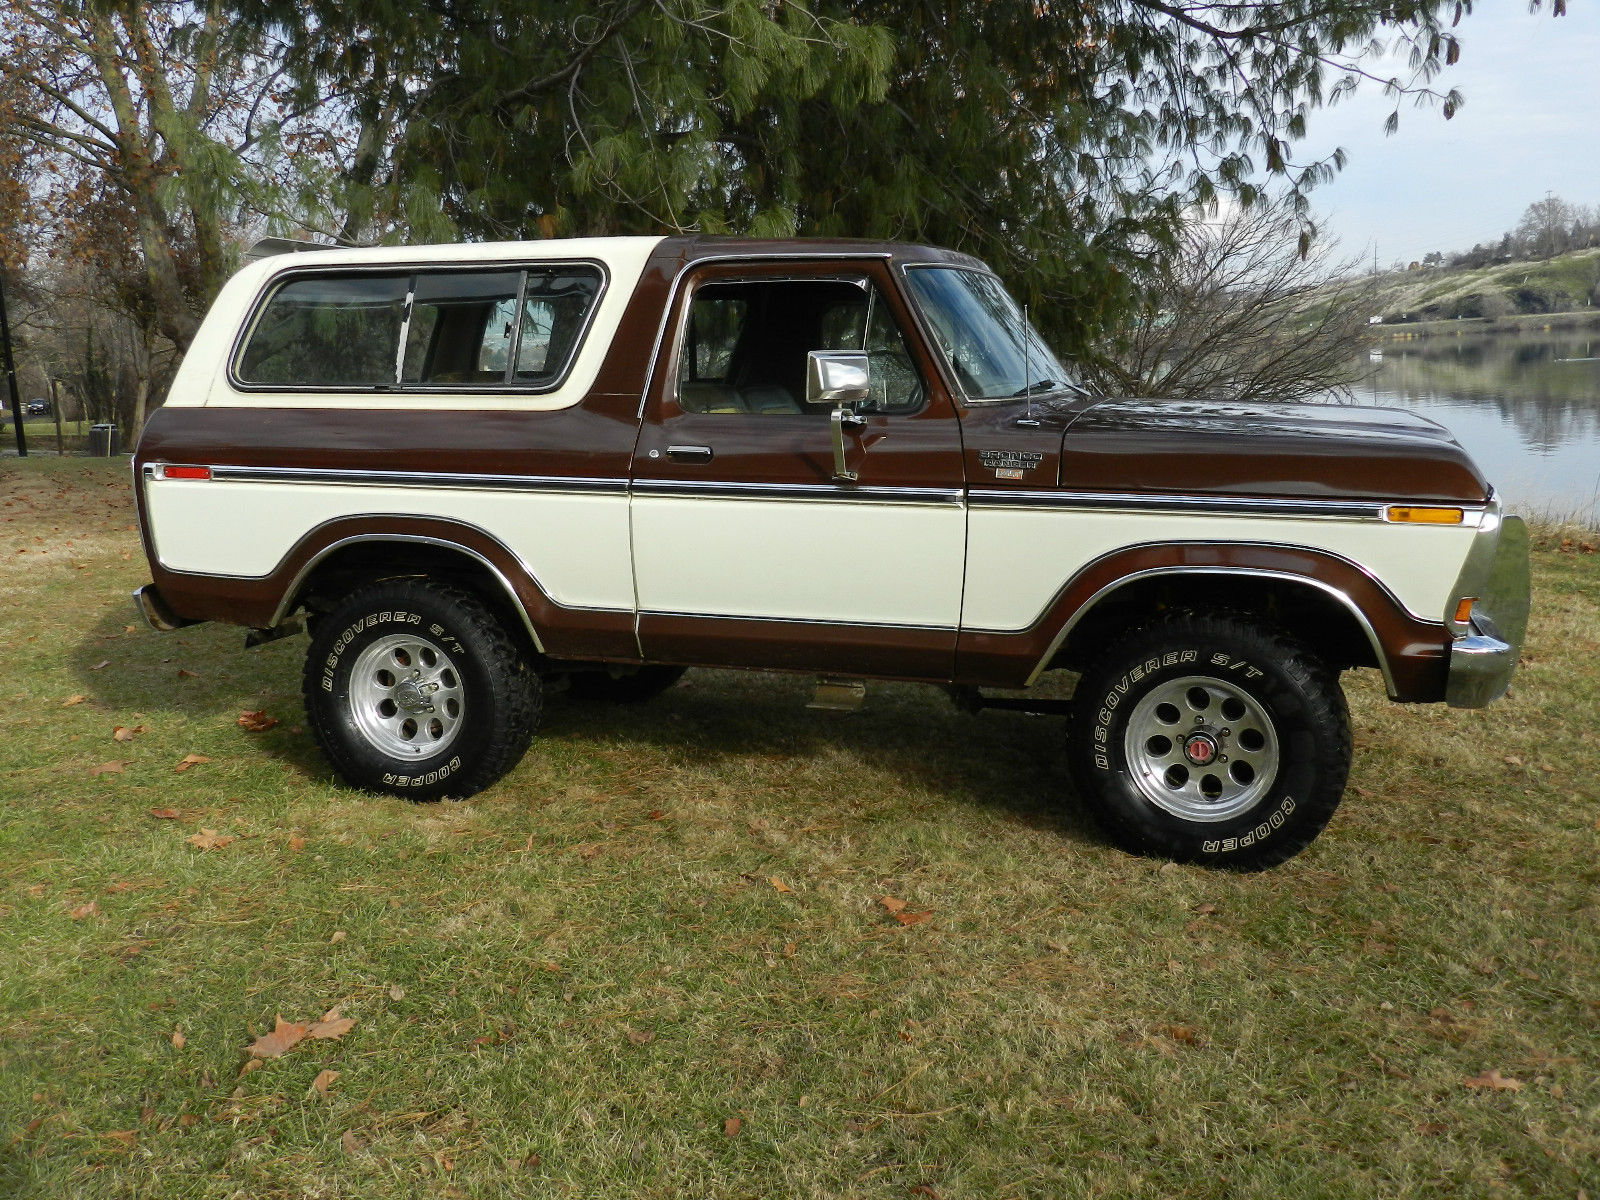 1979 ford bronco f150 4x4 xlt rare orignal paint and body classic a must see for sale in. Black Bedroom Furniture Sets. Home Design Ideas